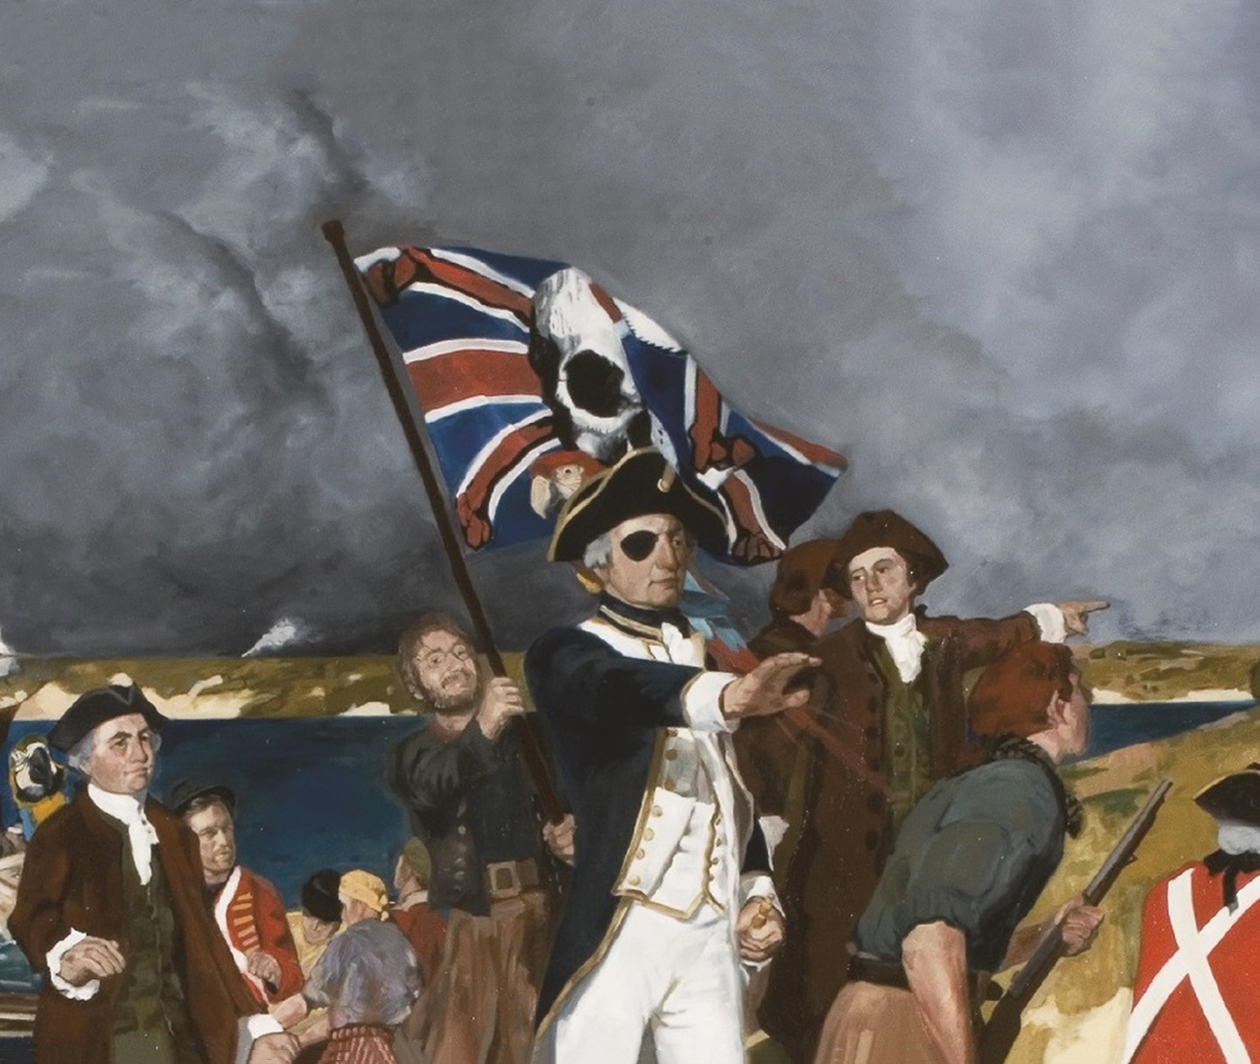 Confronting Captain Cook: Memorialisation in museums and public spaces